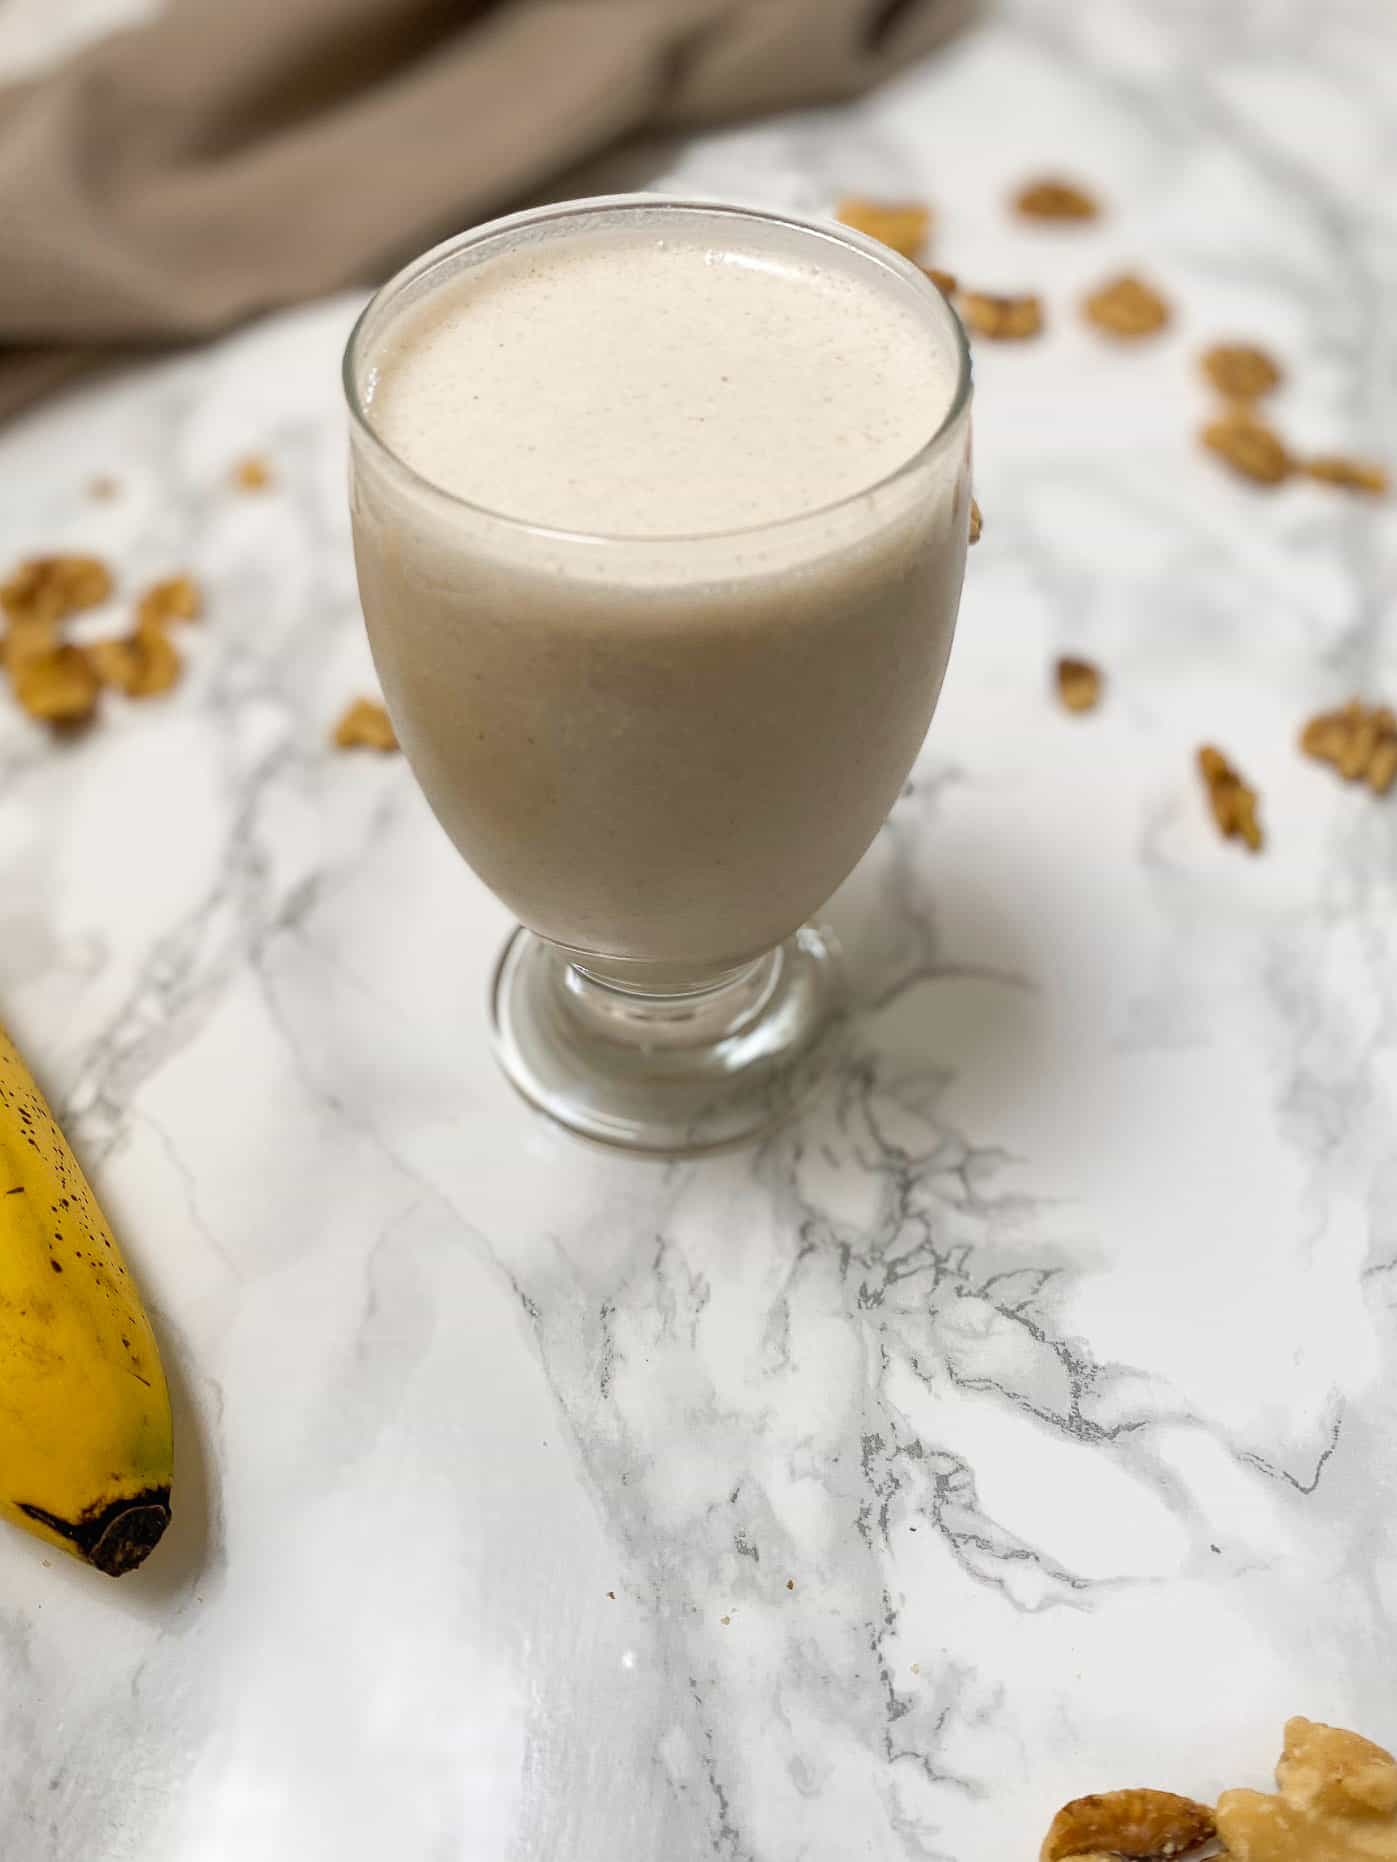 banana walnut smoothie in glass cup with walnuts and banana scattered around